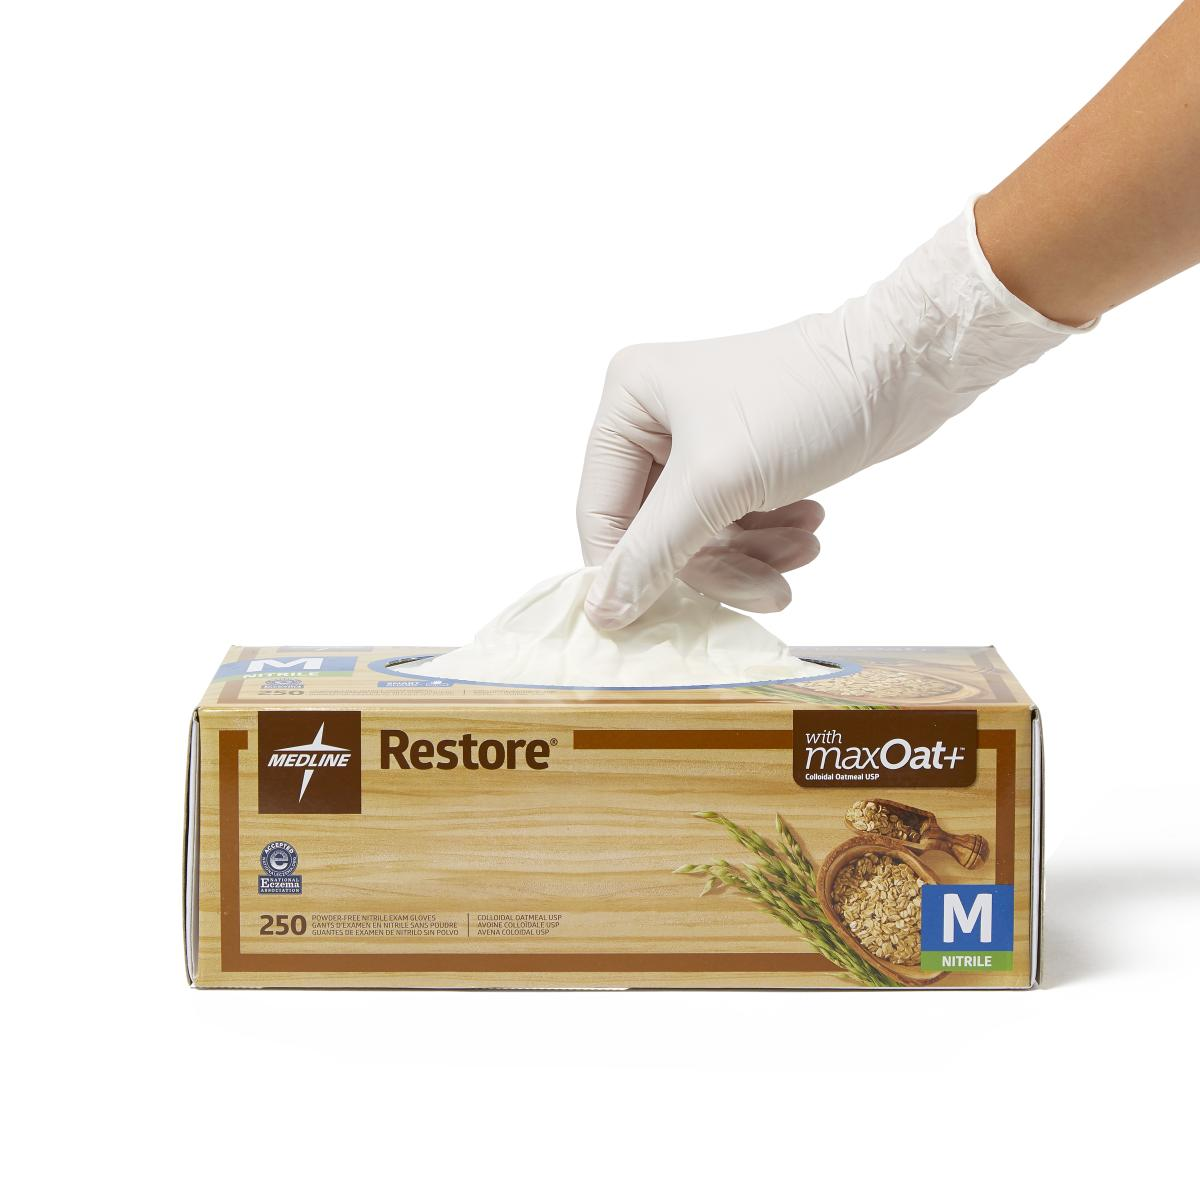 Restore® Powder-Free Nitrile Gloves with maxOat+ colloidal oatmeal